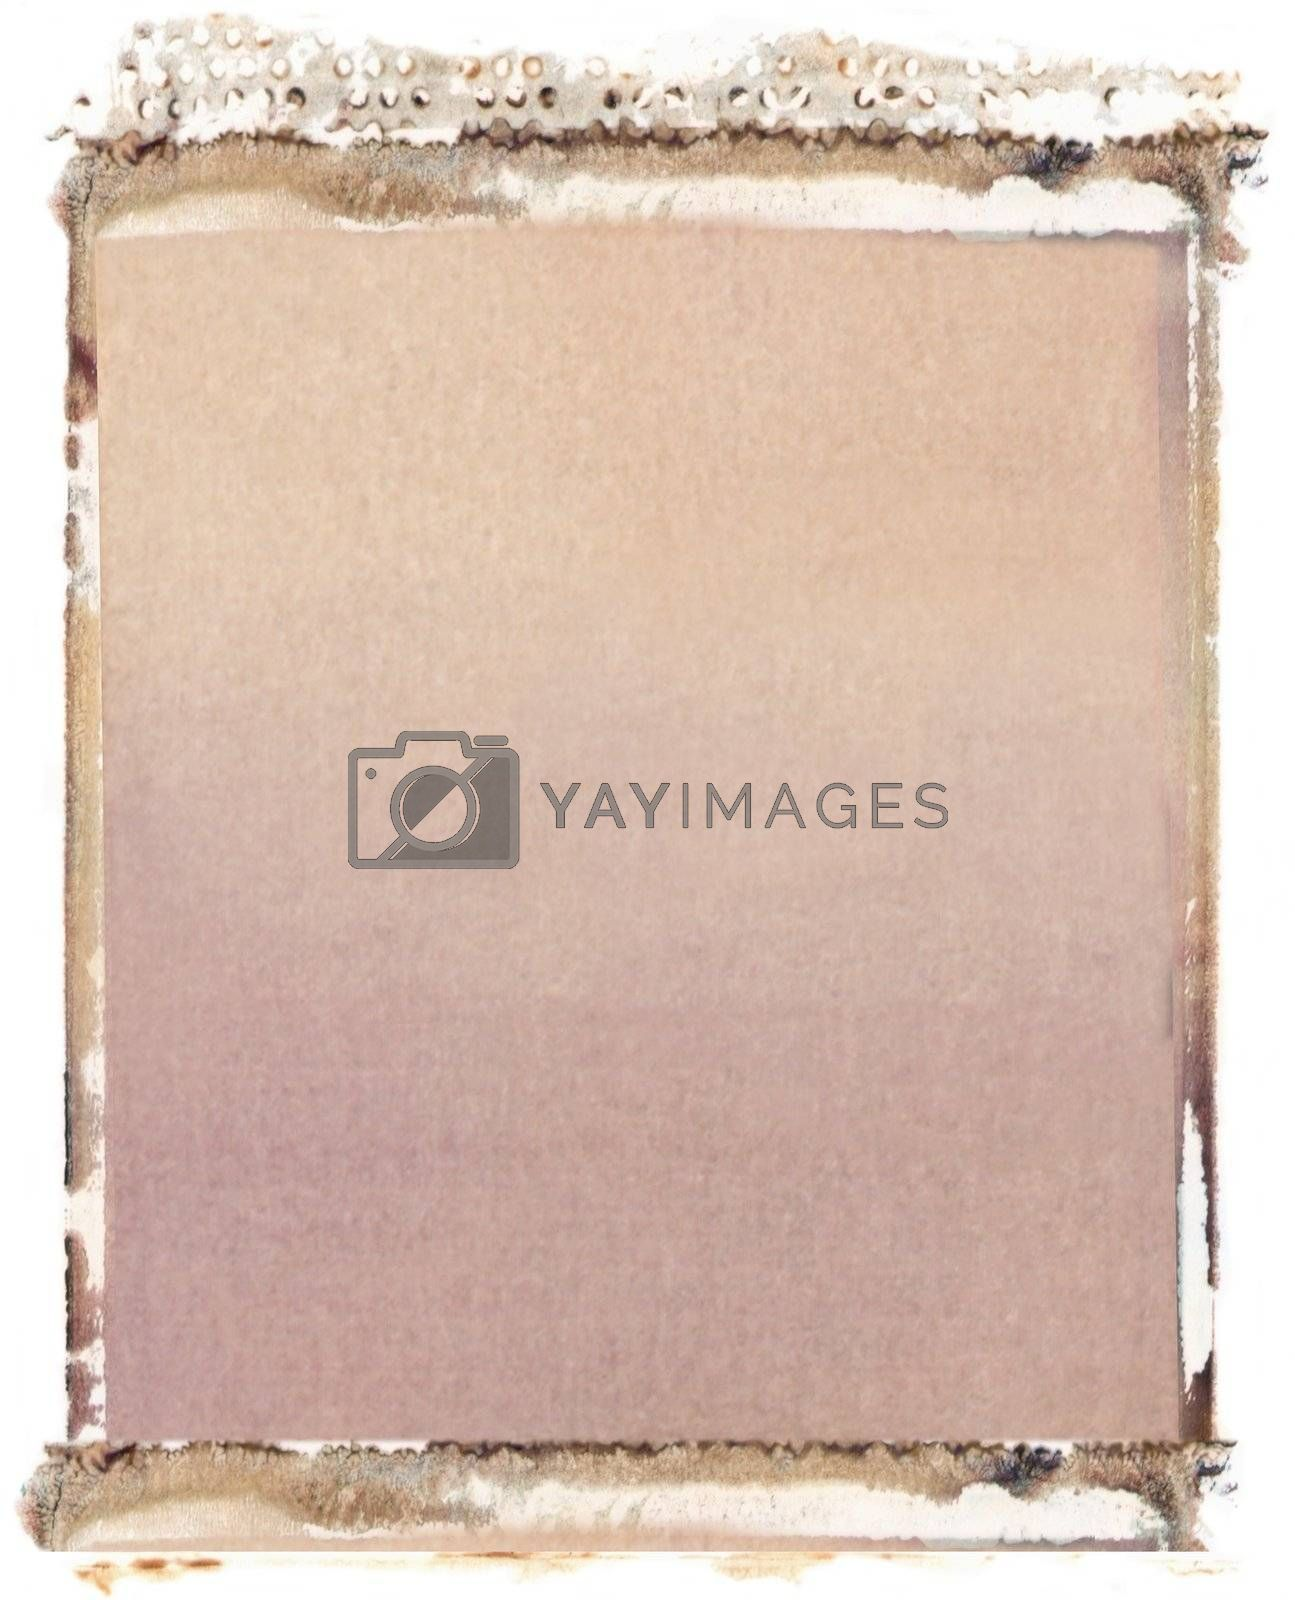 Blank 4x5 format photo border on white background